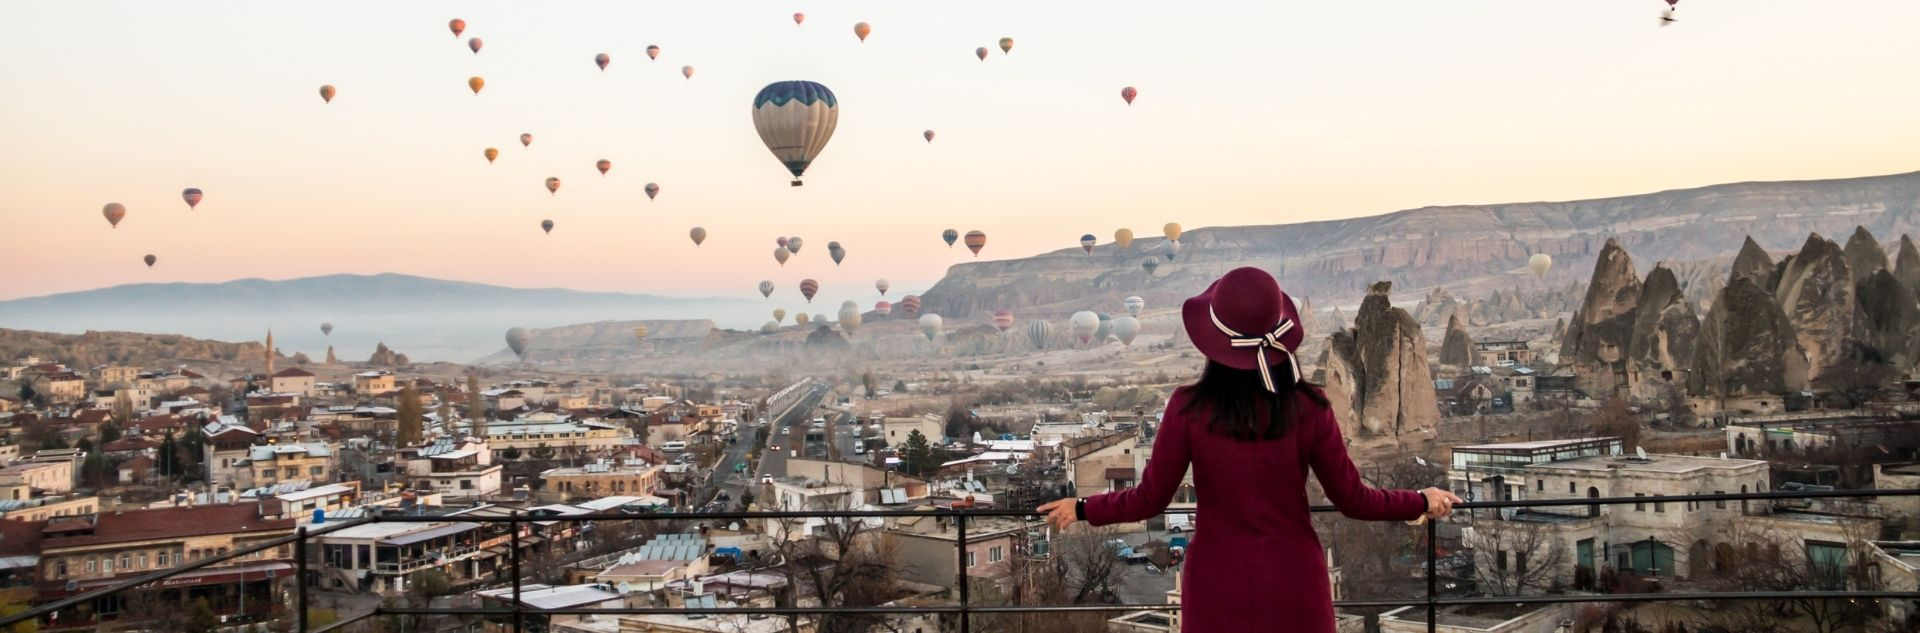 women with hot air baloon